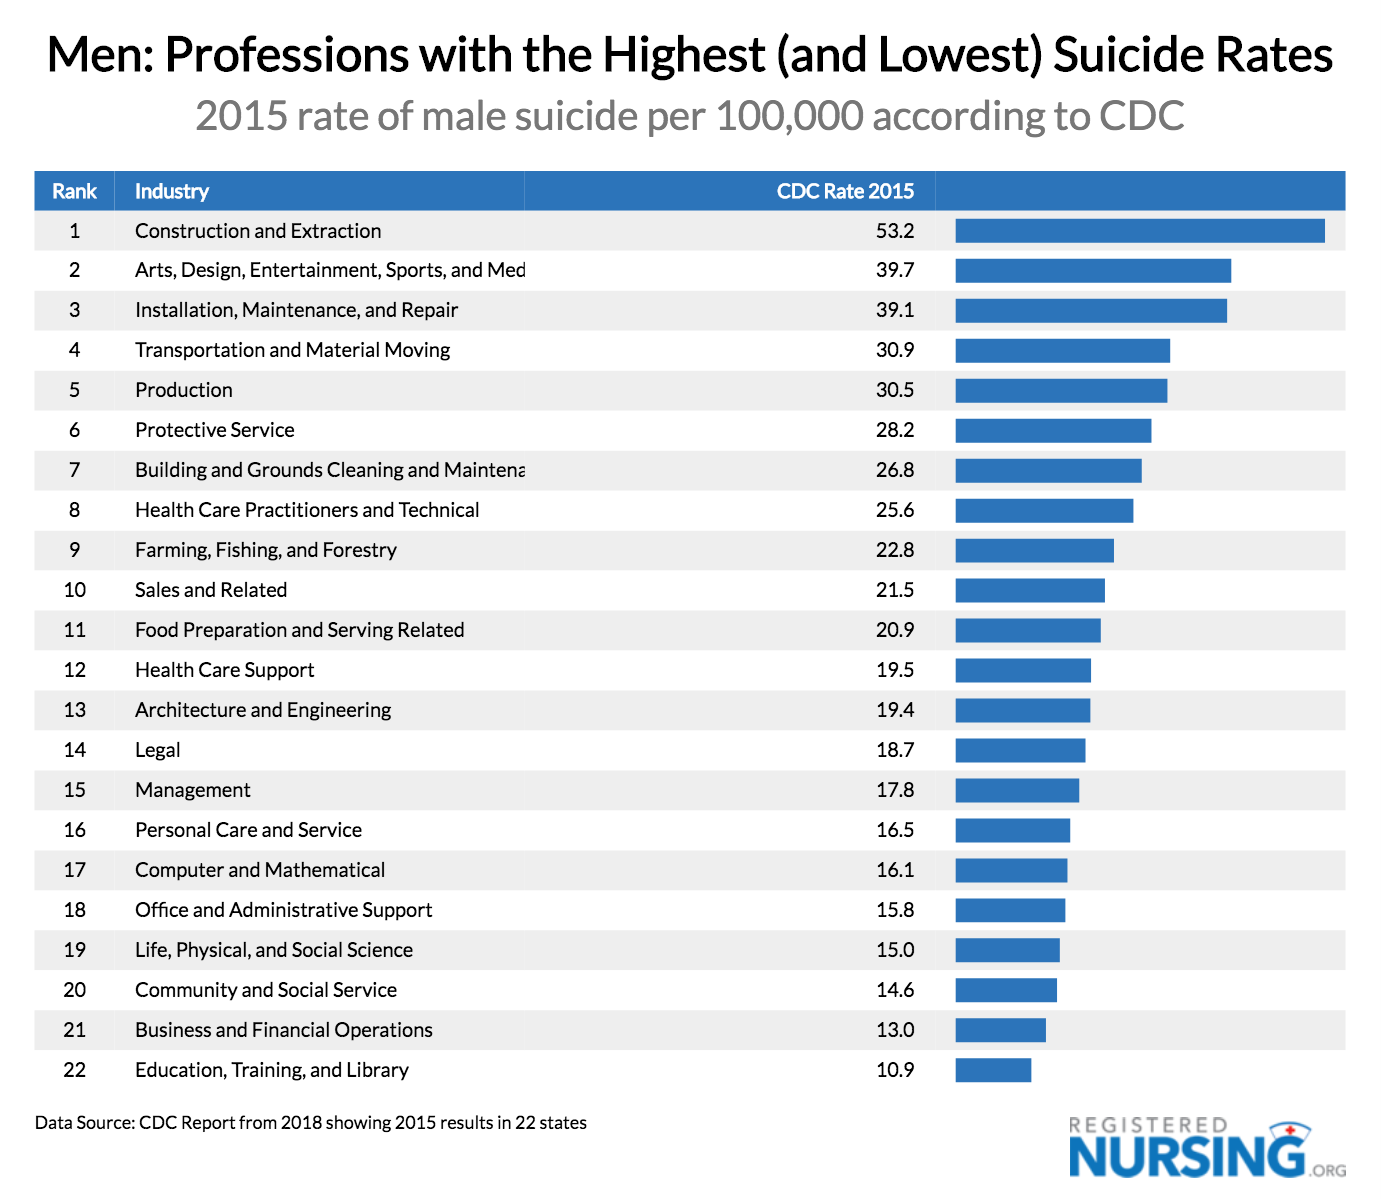 Highest & Lowest Suicide Rates for Men by Profession